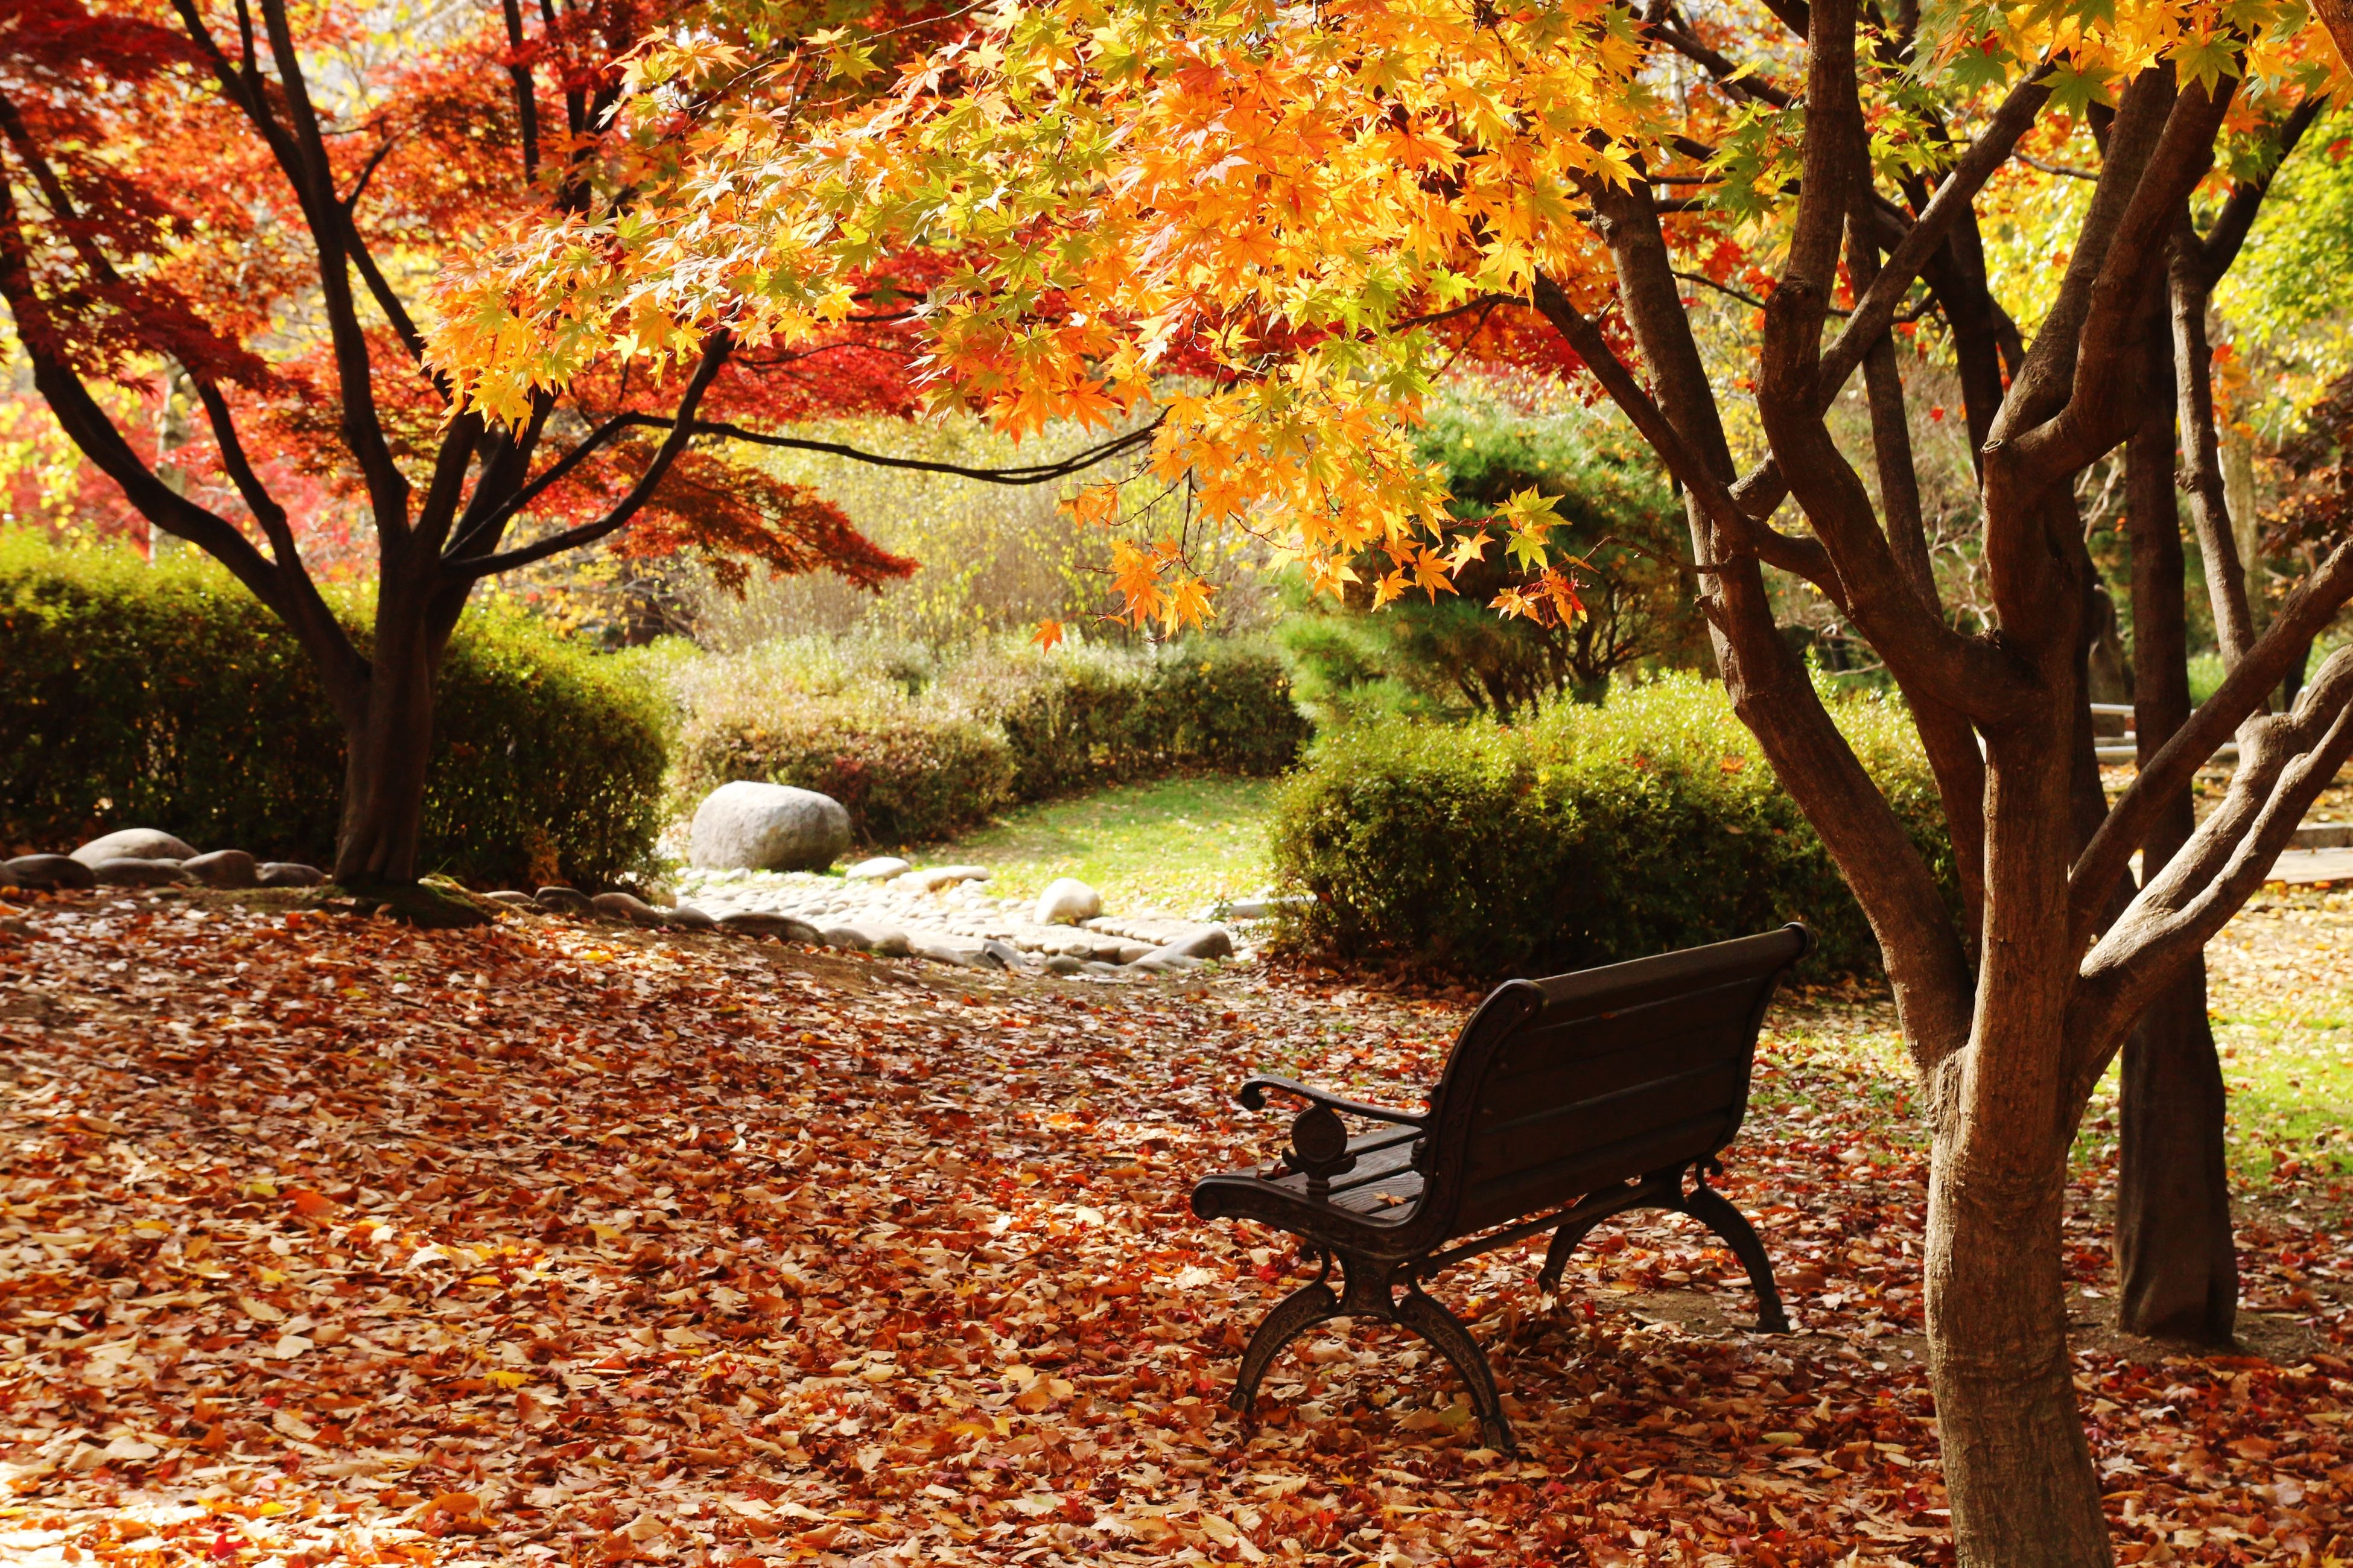 tree, autumn, tranquility, change, branch, nature, leaf, tranquil scene, beauty in nature, season, growth, scenics, park - man made space, tree trunk, bench, sunlight, park, fallen, day, outdoors